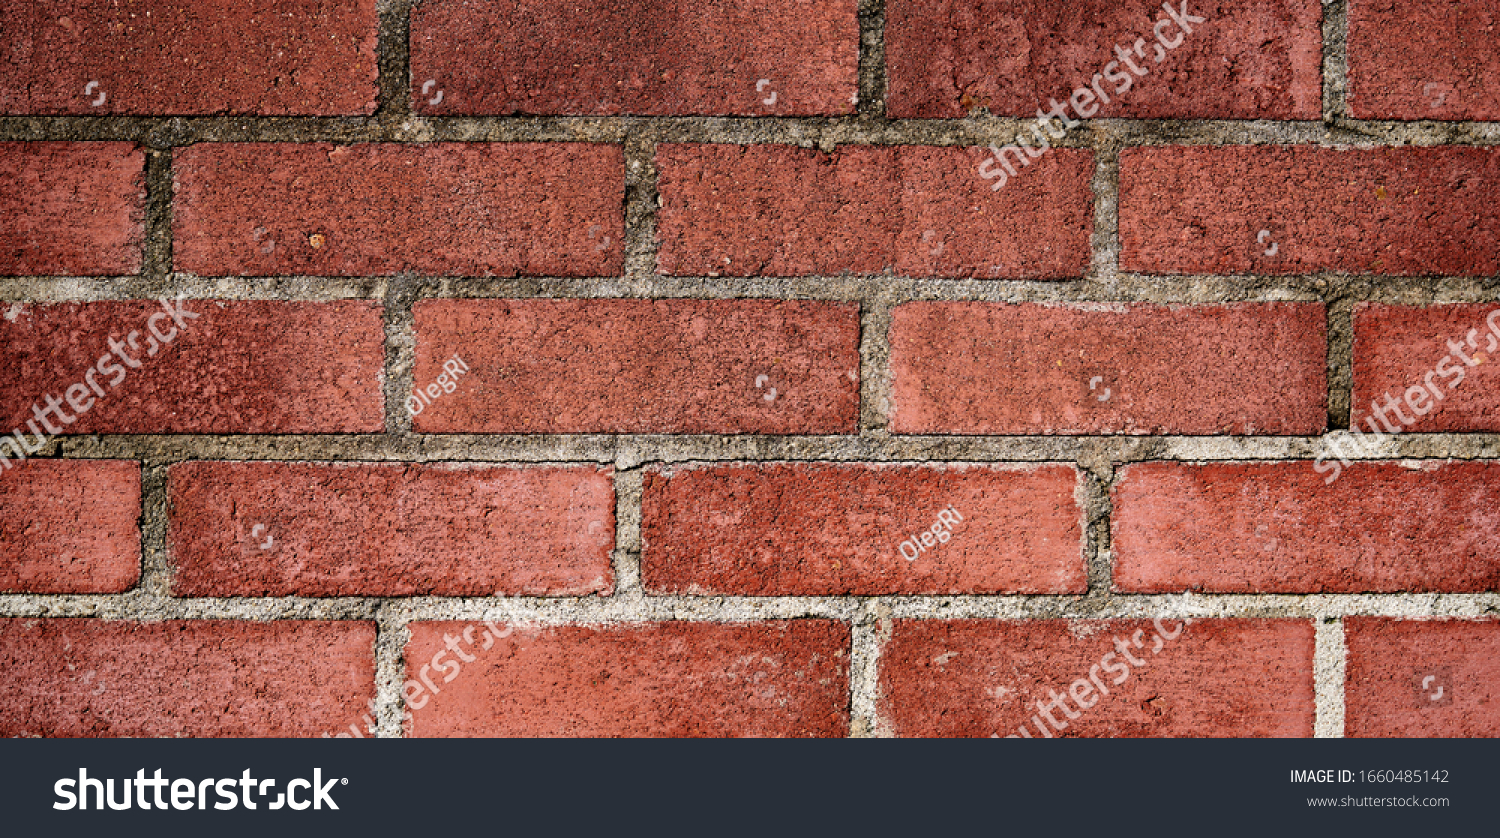 Brick wall with red brick, red brick background. #1660485142